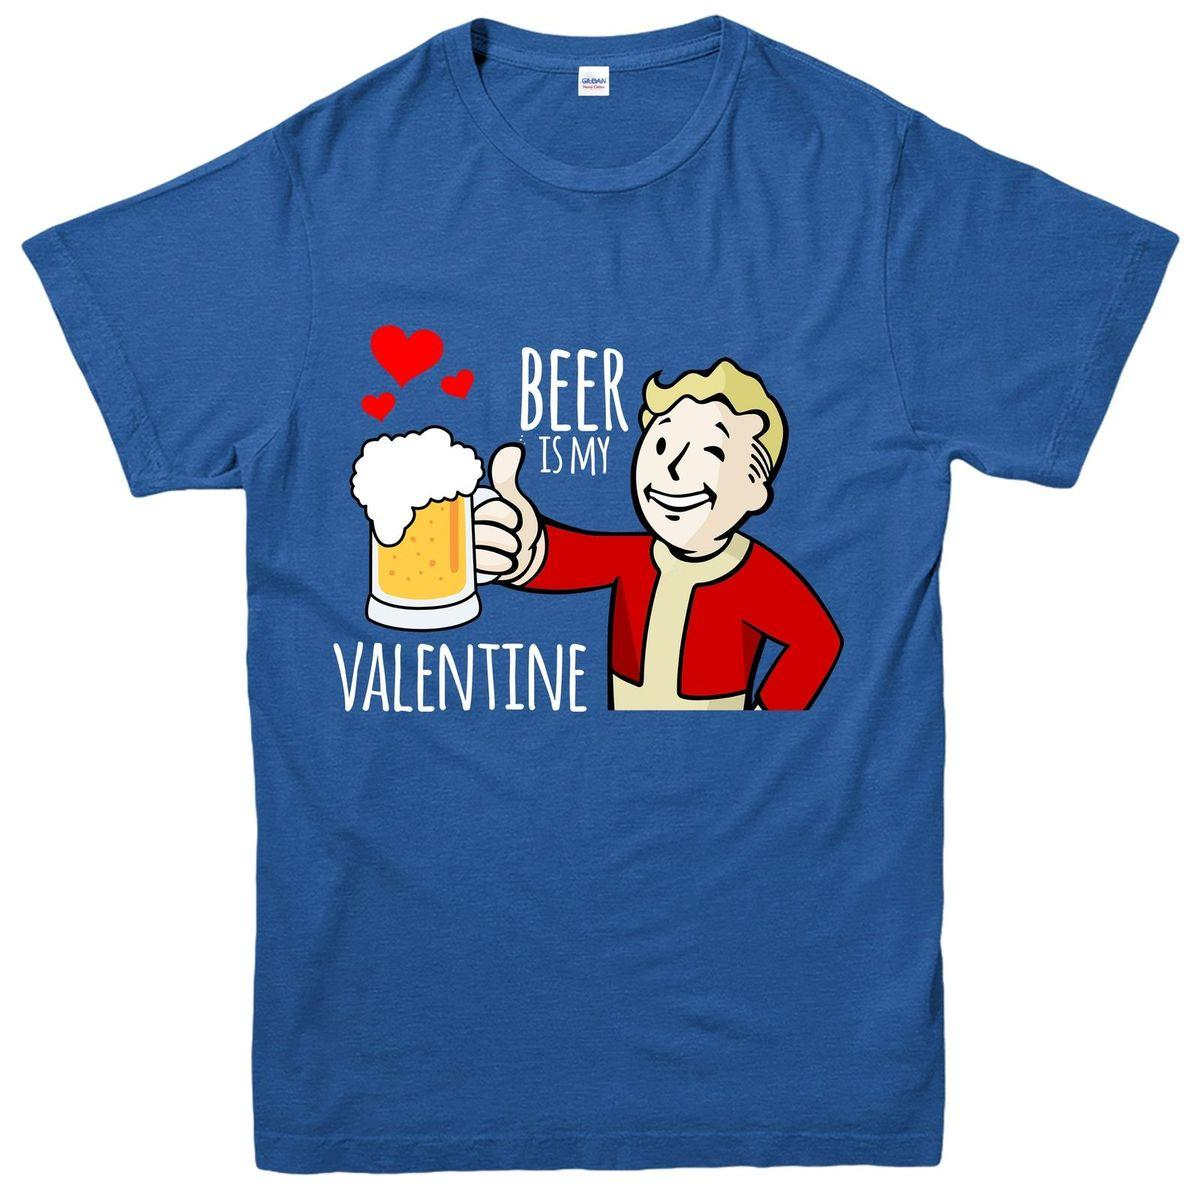 1a5ade201 Beer Is My Valentine T Shirt, Funny Valentines Day Tee Top Men T Shirts  Geek T Shirts From Qz2878193779, $16.24| DHgate.Com